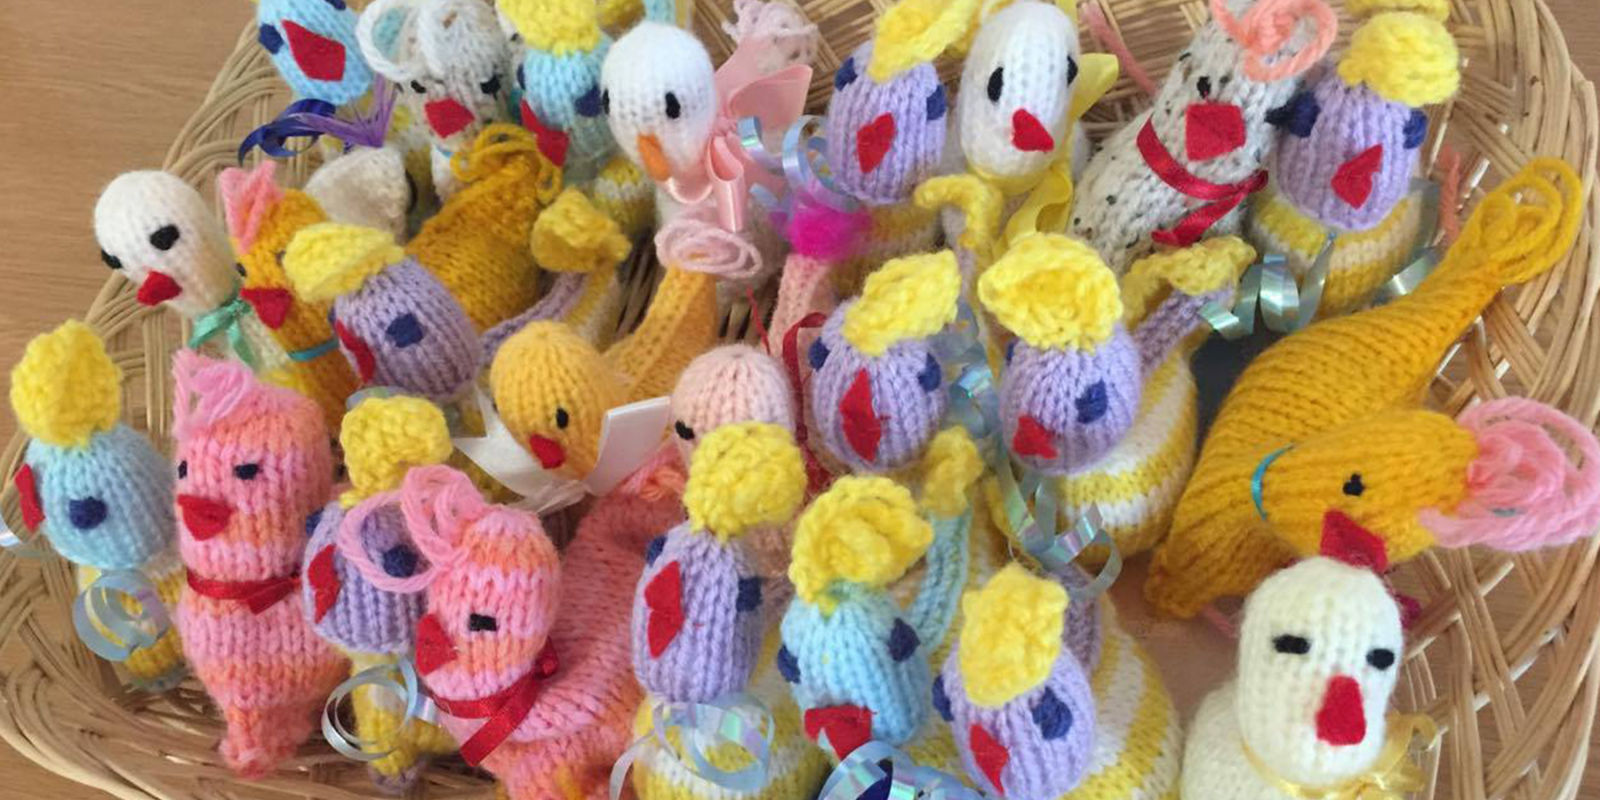 Knitting Easter Chicks : People are knitting easter chicks to help those with life